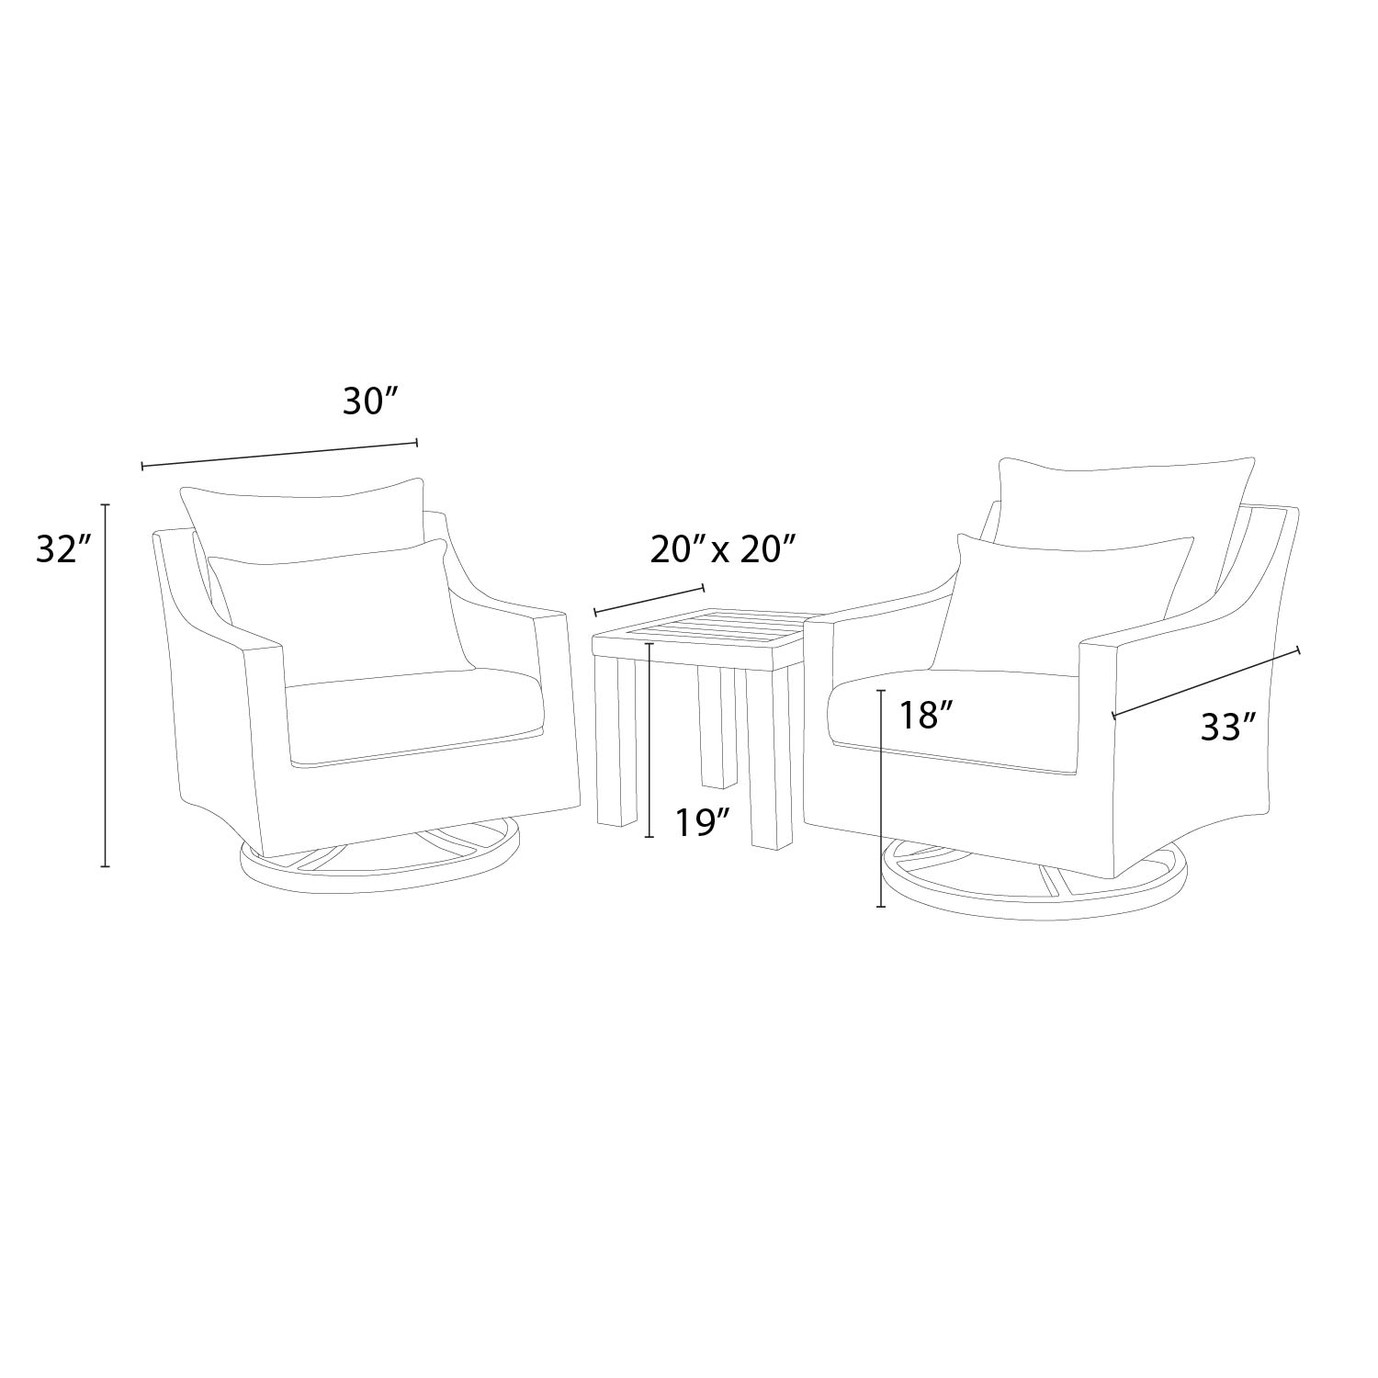 Deco™ Deluxe Motion Club Chairs & Side Table - Wisteria Lavender